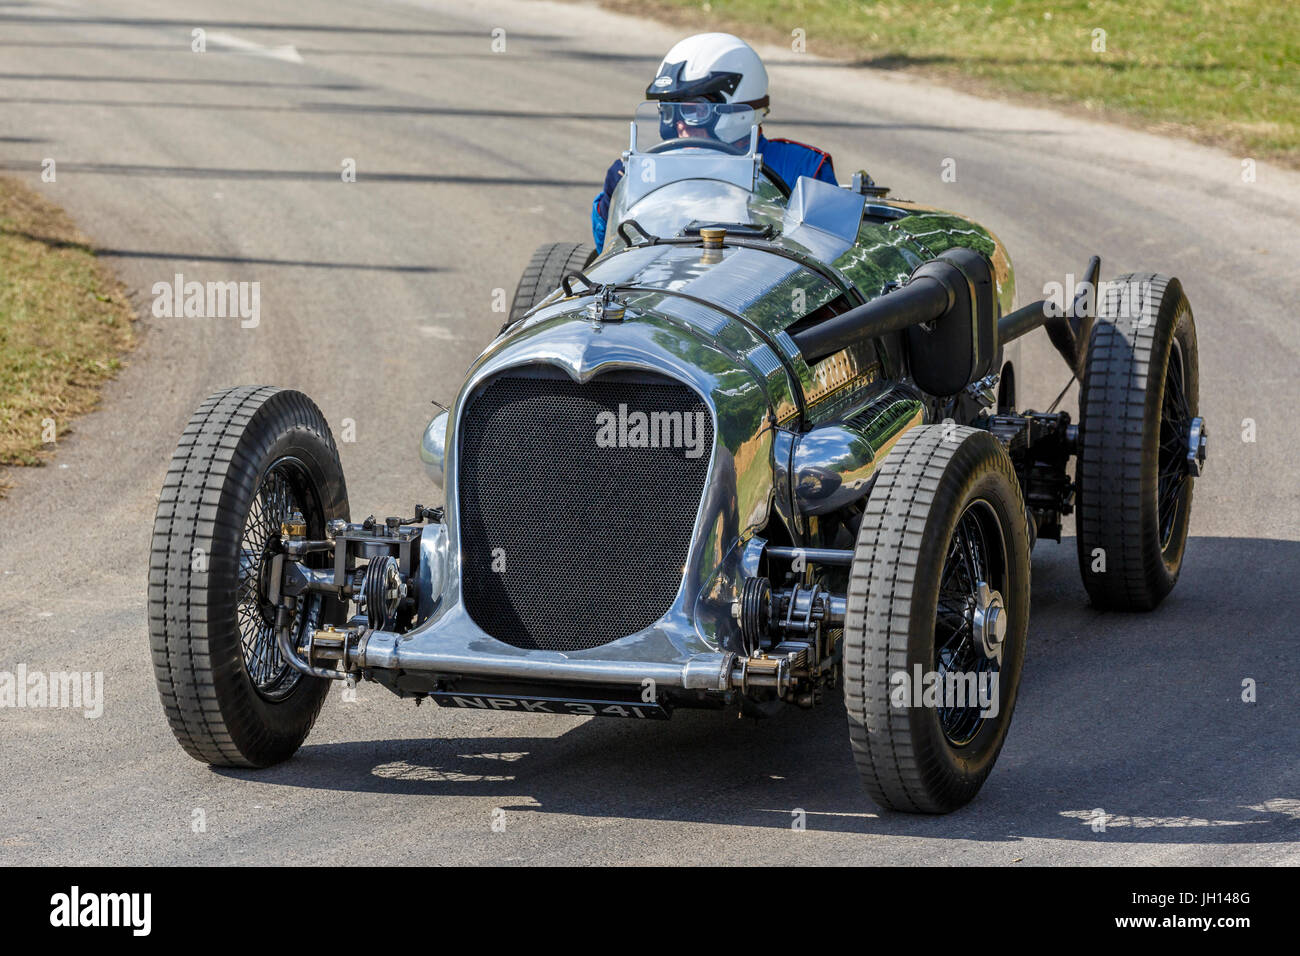 1933 Napier Railton Special with driver Allan Winn at the 2013 Goodwood Festival of Speed, Sussex, England, UK. Stock Photo